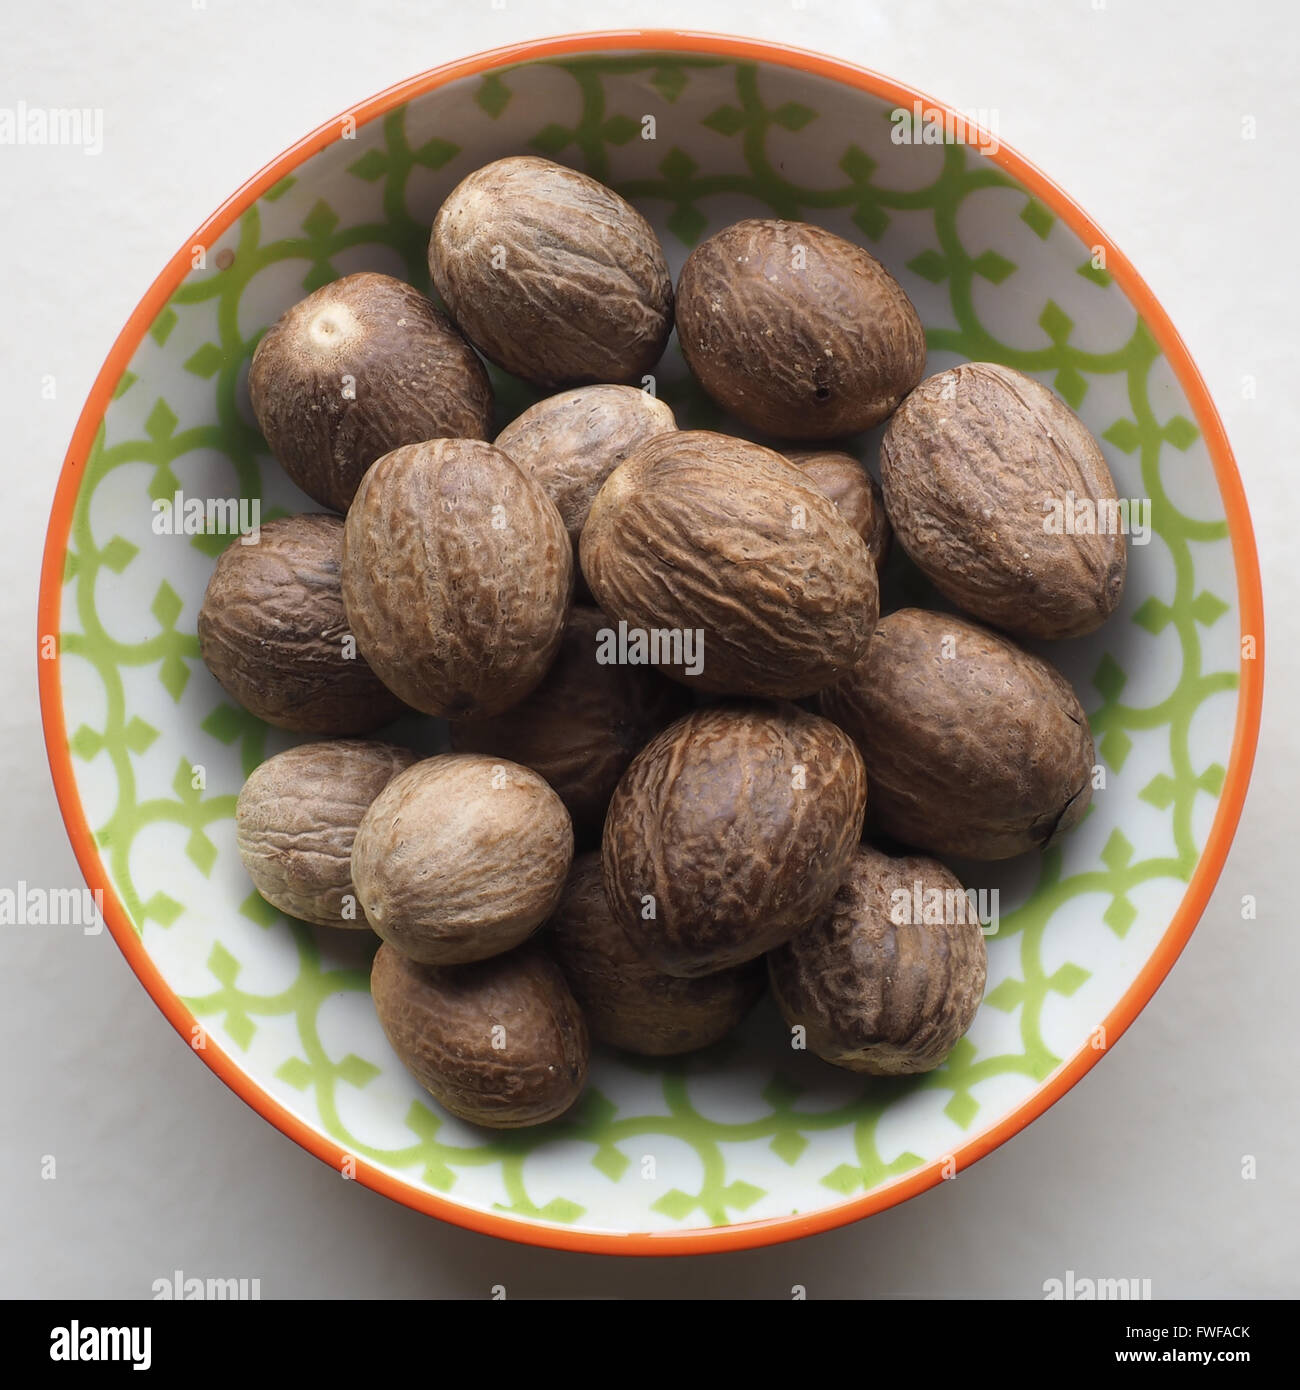 Nutmegs Whole - Stock Image